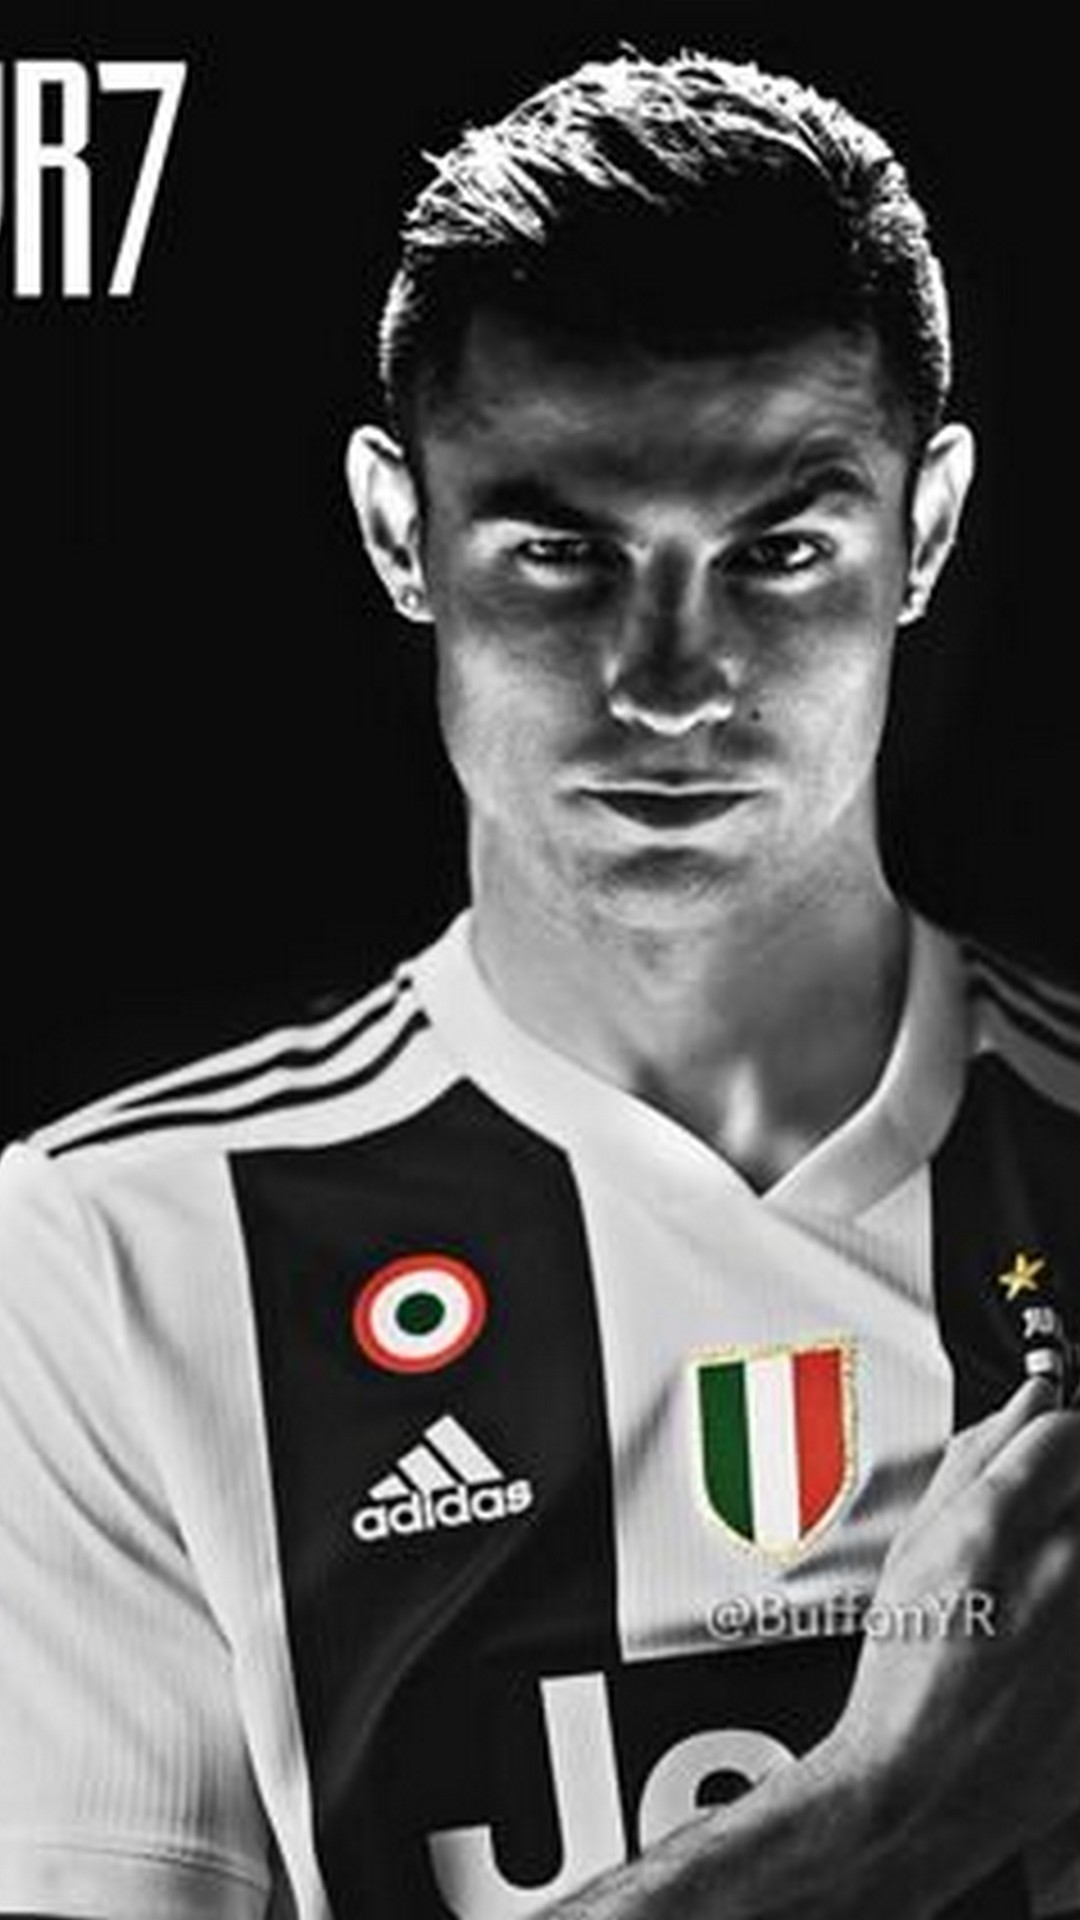 Cristiano Ronaldo Juventus Wallpaper Android   2020 Android Wallpapers 1080x1920